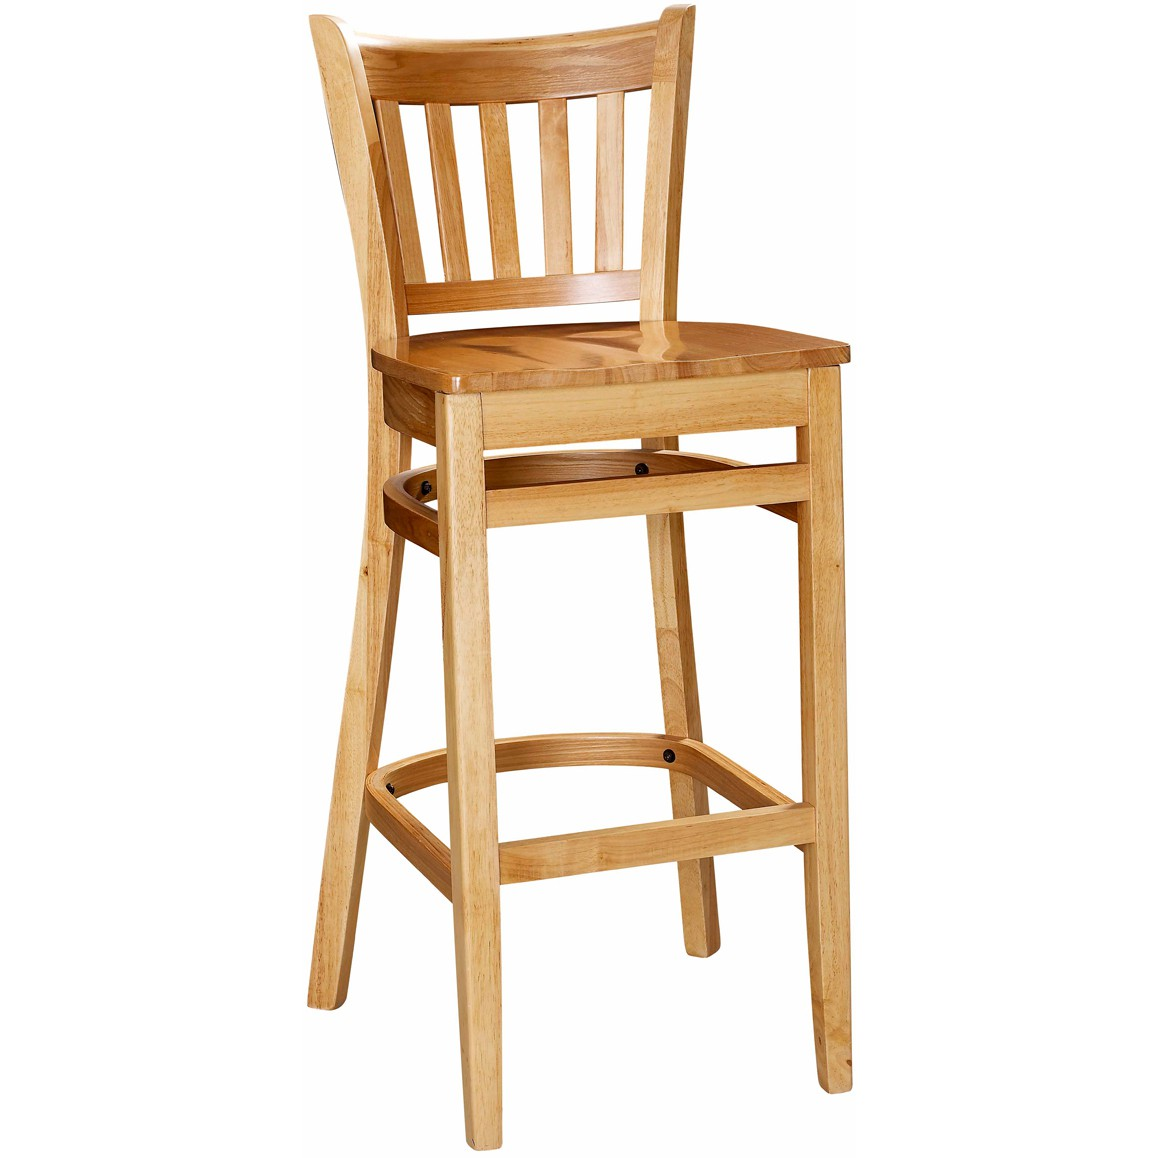 Bar Stools For Sale Vertical Slat Wood Bar Stool For Sale Restaurant Barstools